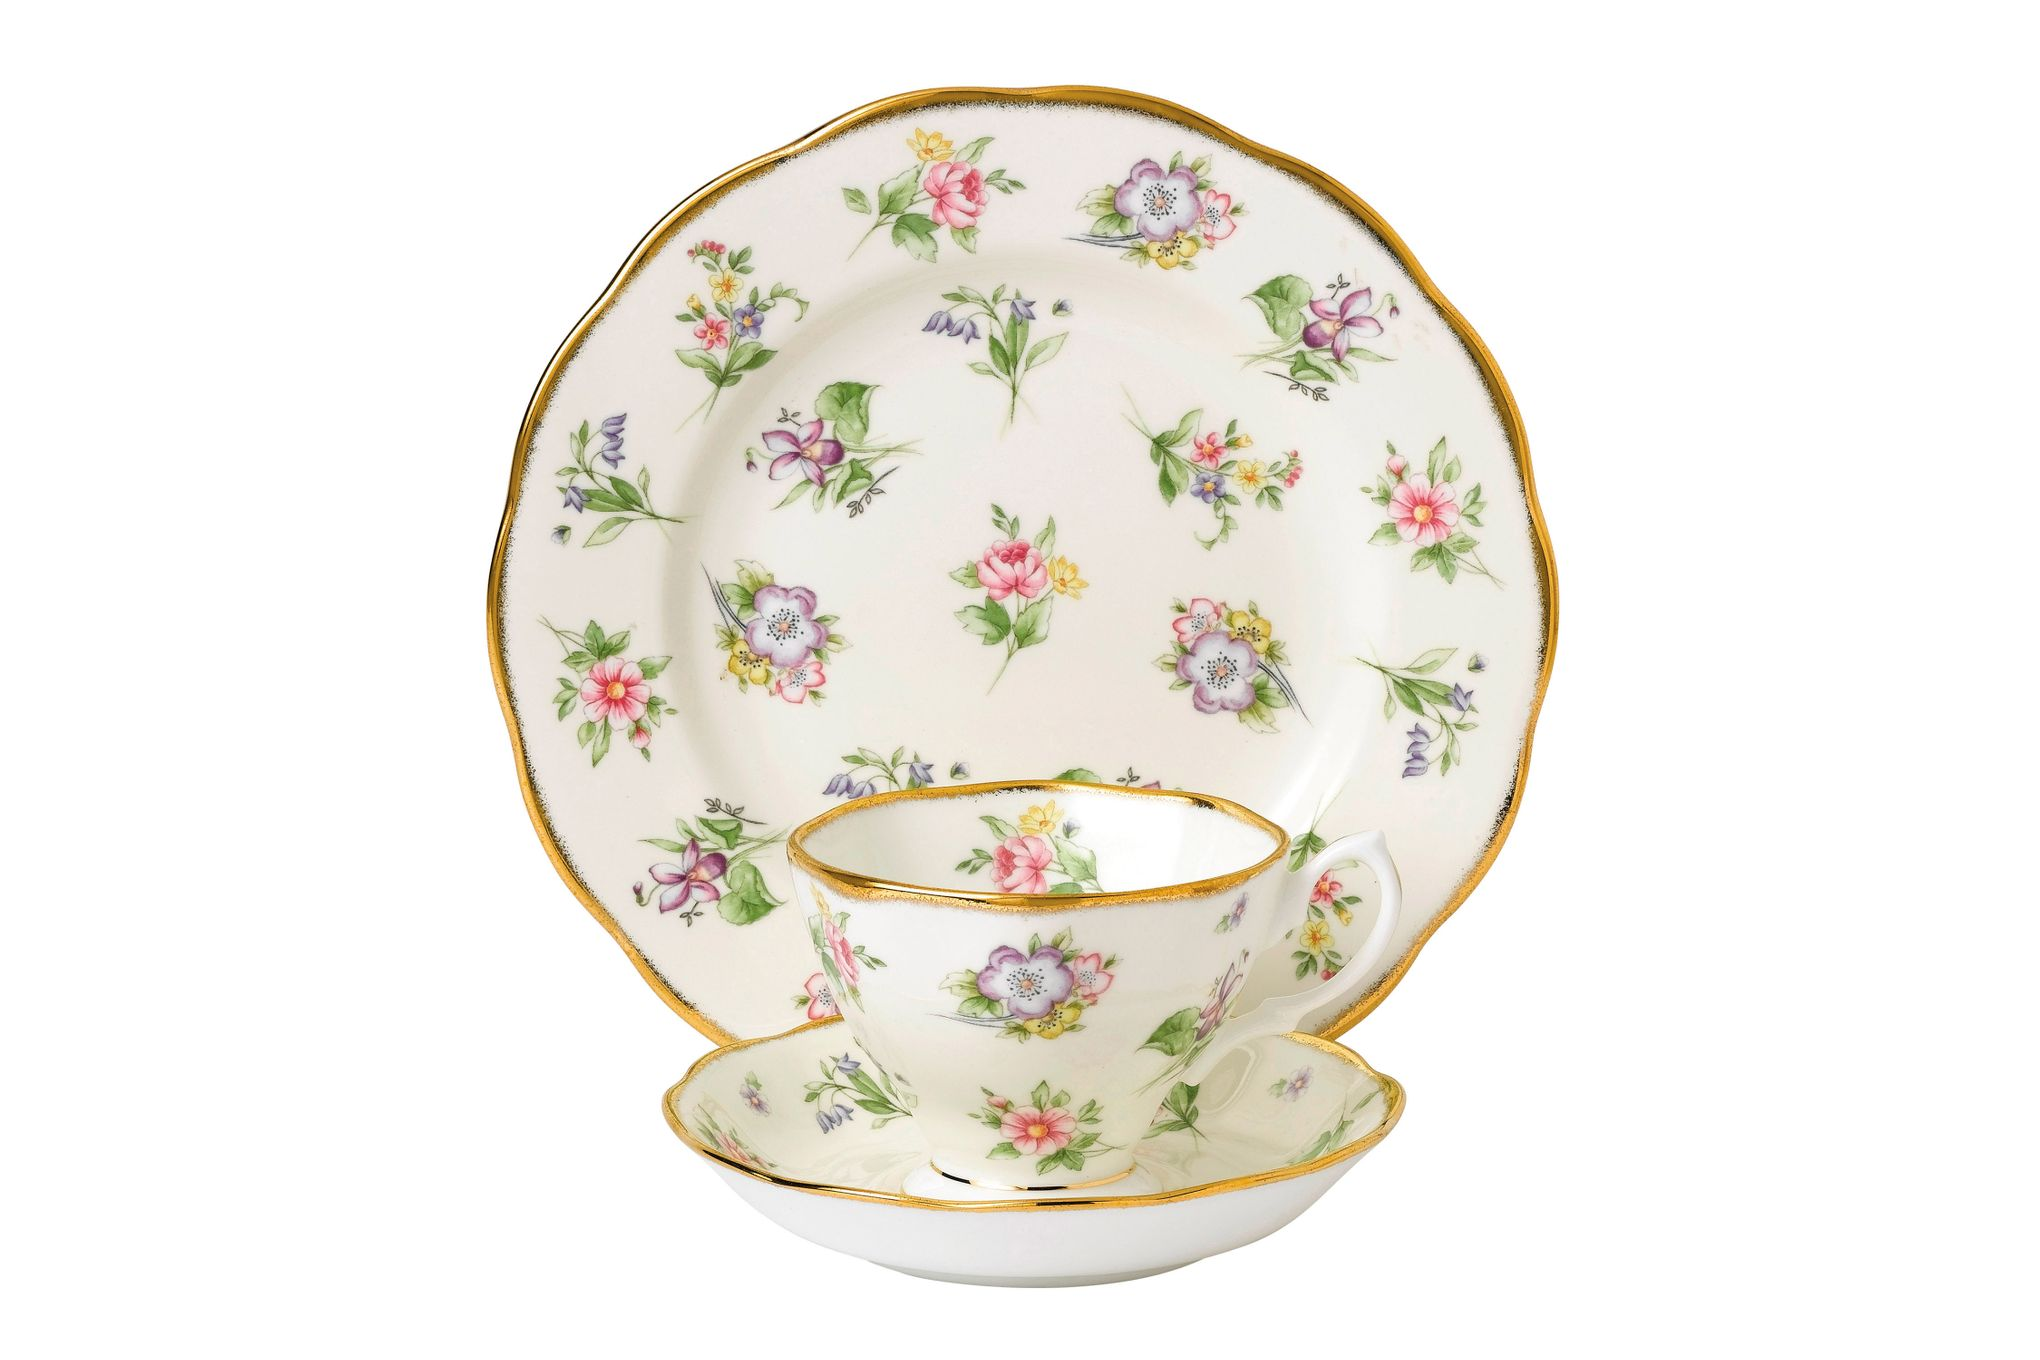 Royal Albert 100 Years of Royal Albert 3 Piece Set Spring Meadow 1920, Teacup & Saucer, Plate 20cm thumb 1